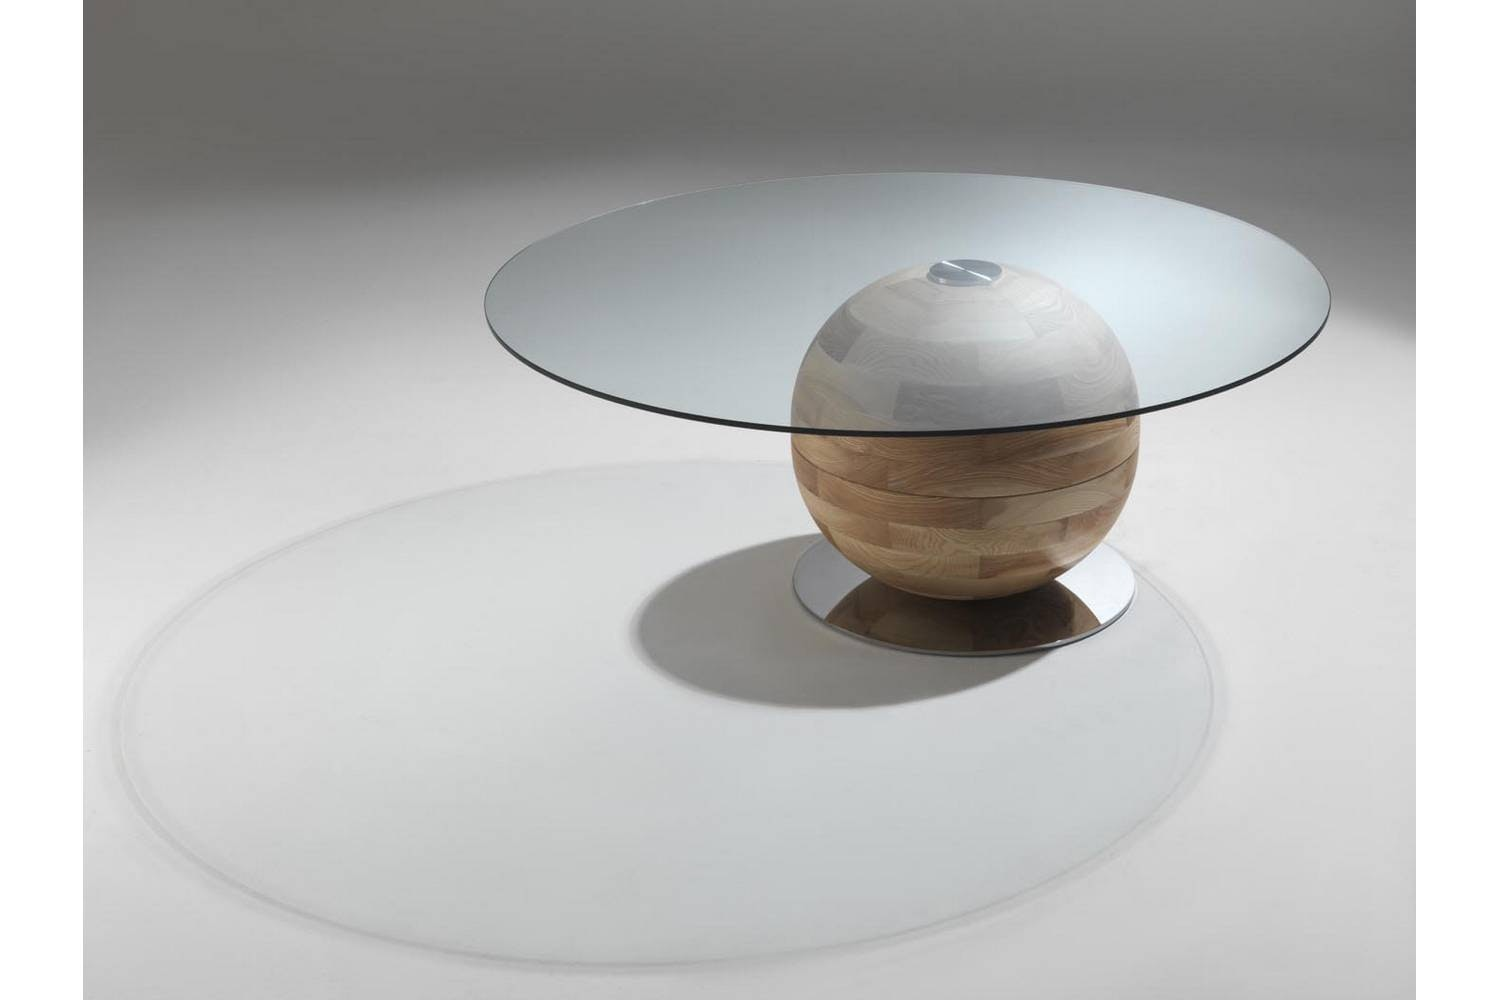 Gheo Table by E. Missaglia for Porada